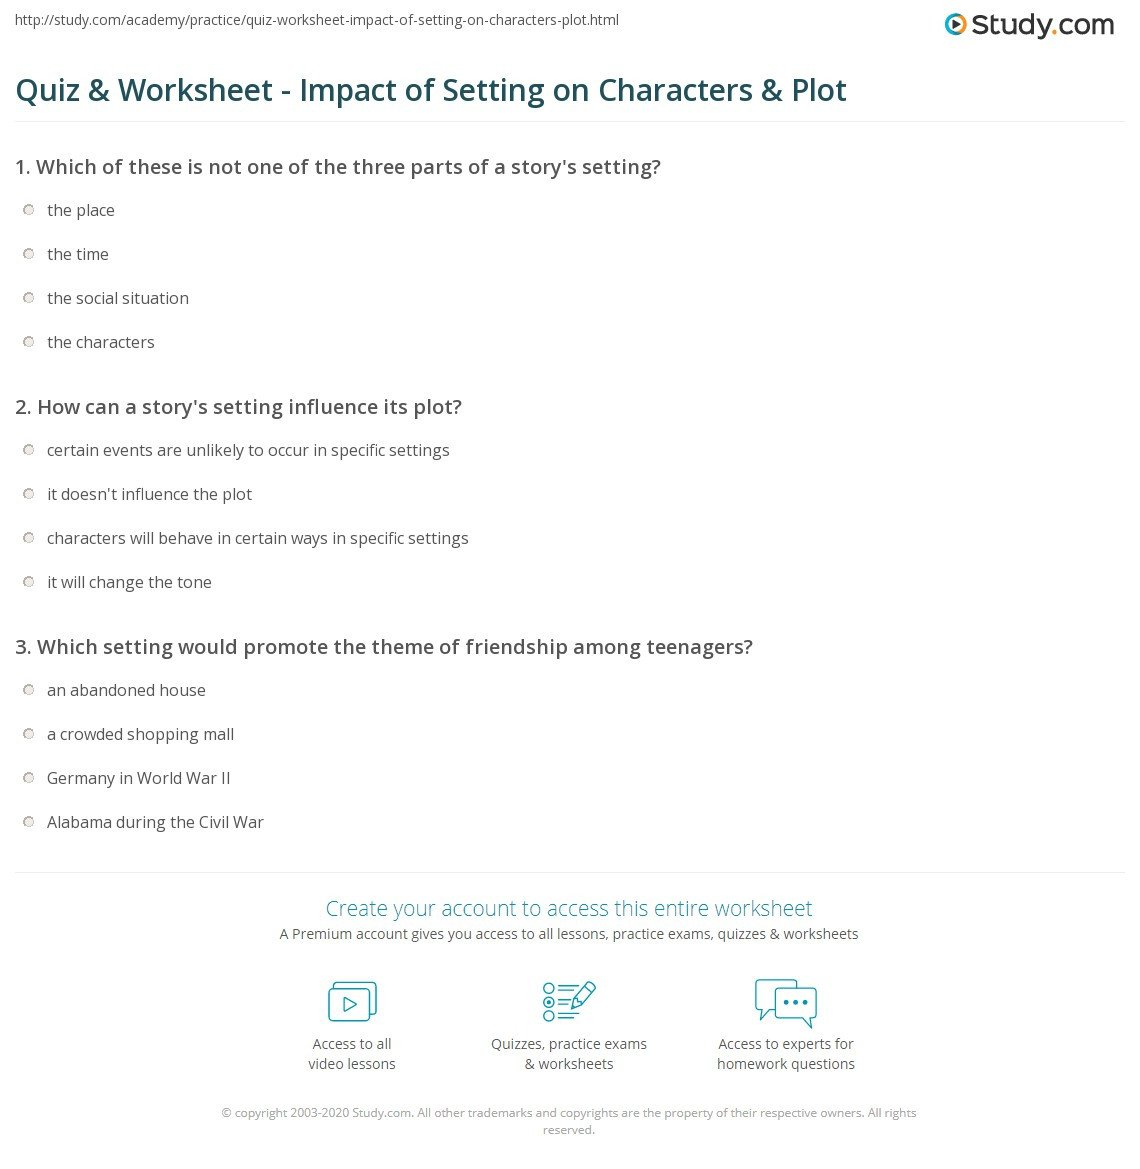 Character Setting Plot Worksheet Quiz & Worksheet Impact Of Setting On Characters & Plot